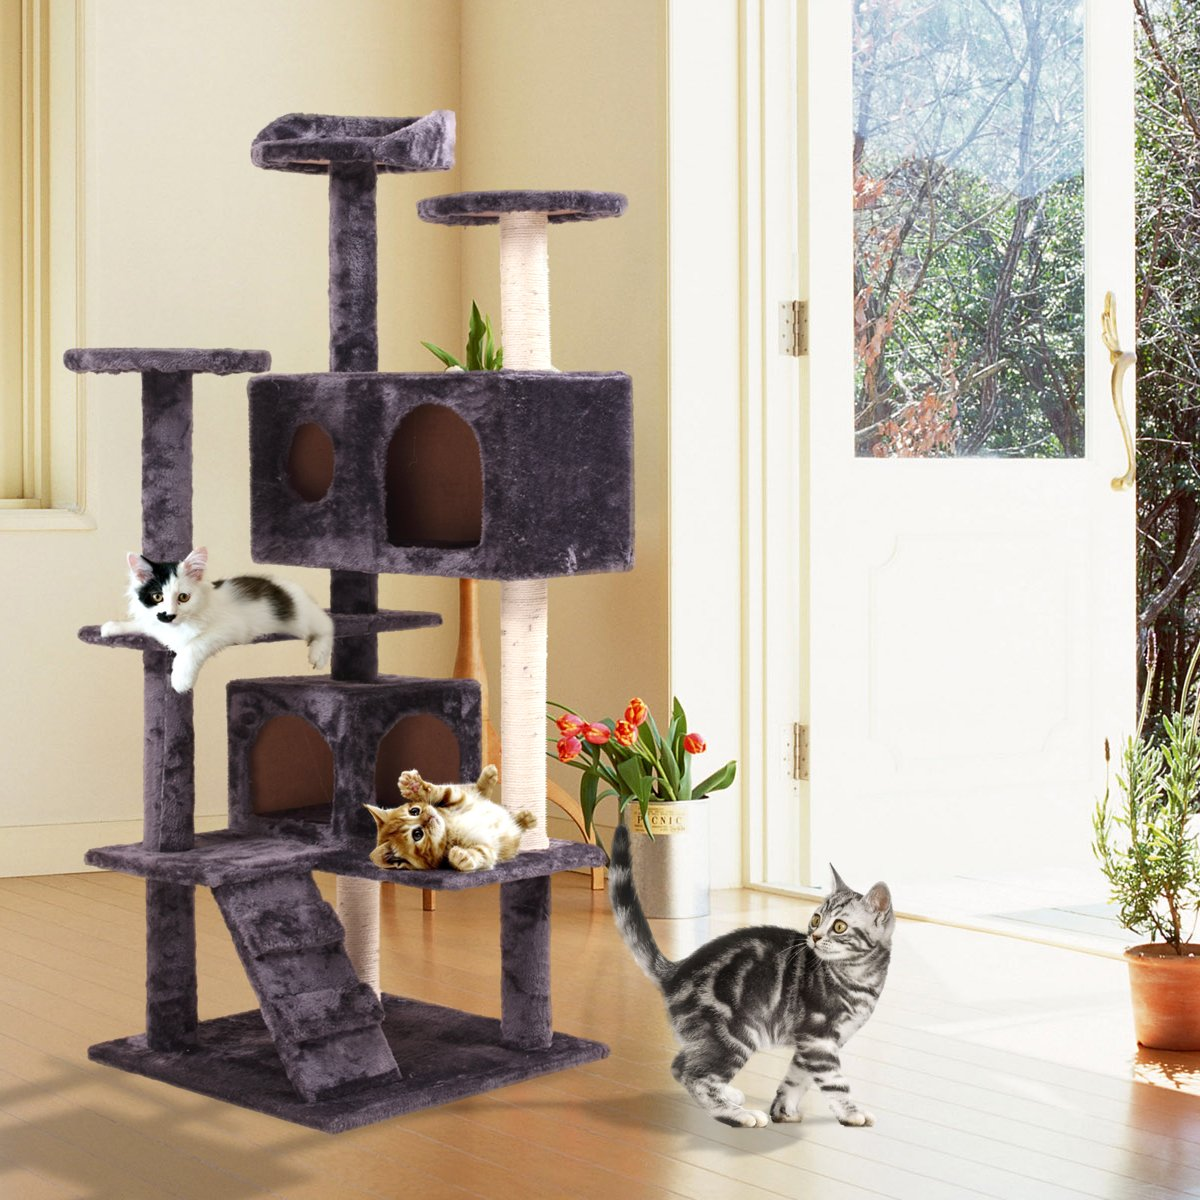 JAXPETY 52'' Indoor Cat Tree/Tower Cat Scratching Post Activity Centre Cats House with Bed Gray